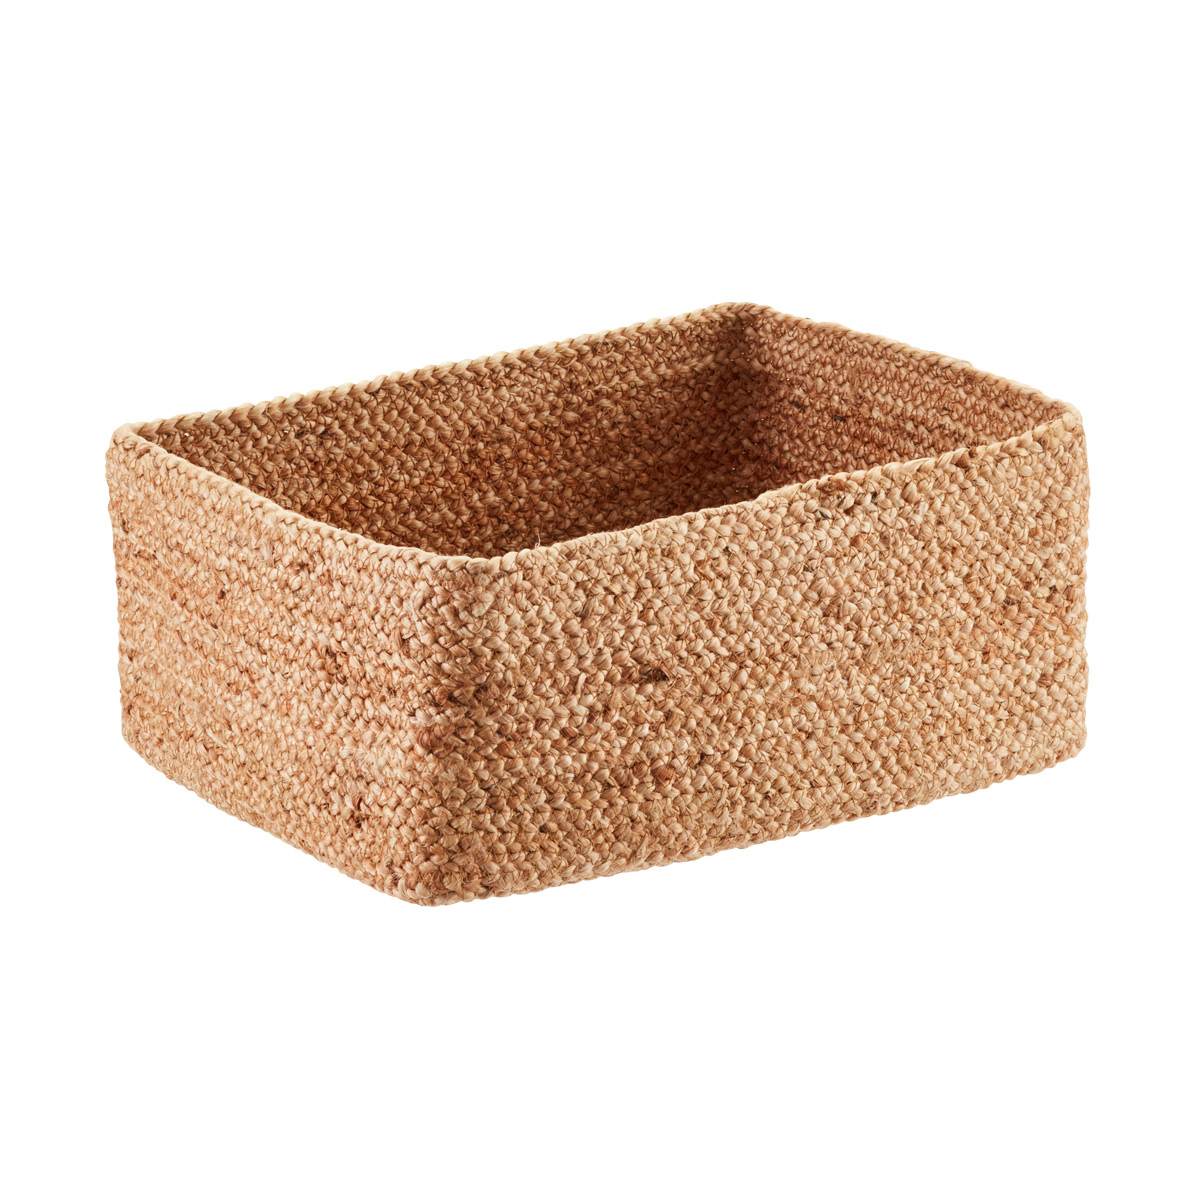 Jute Rectangular Storage Bin